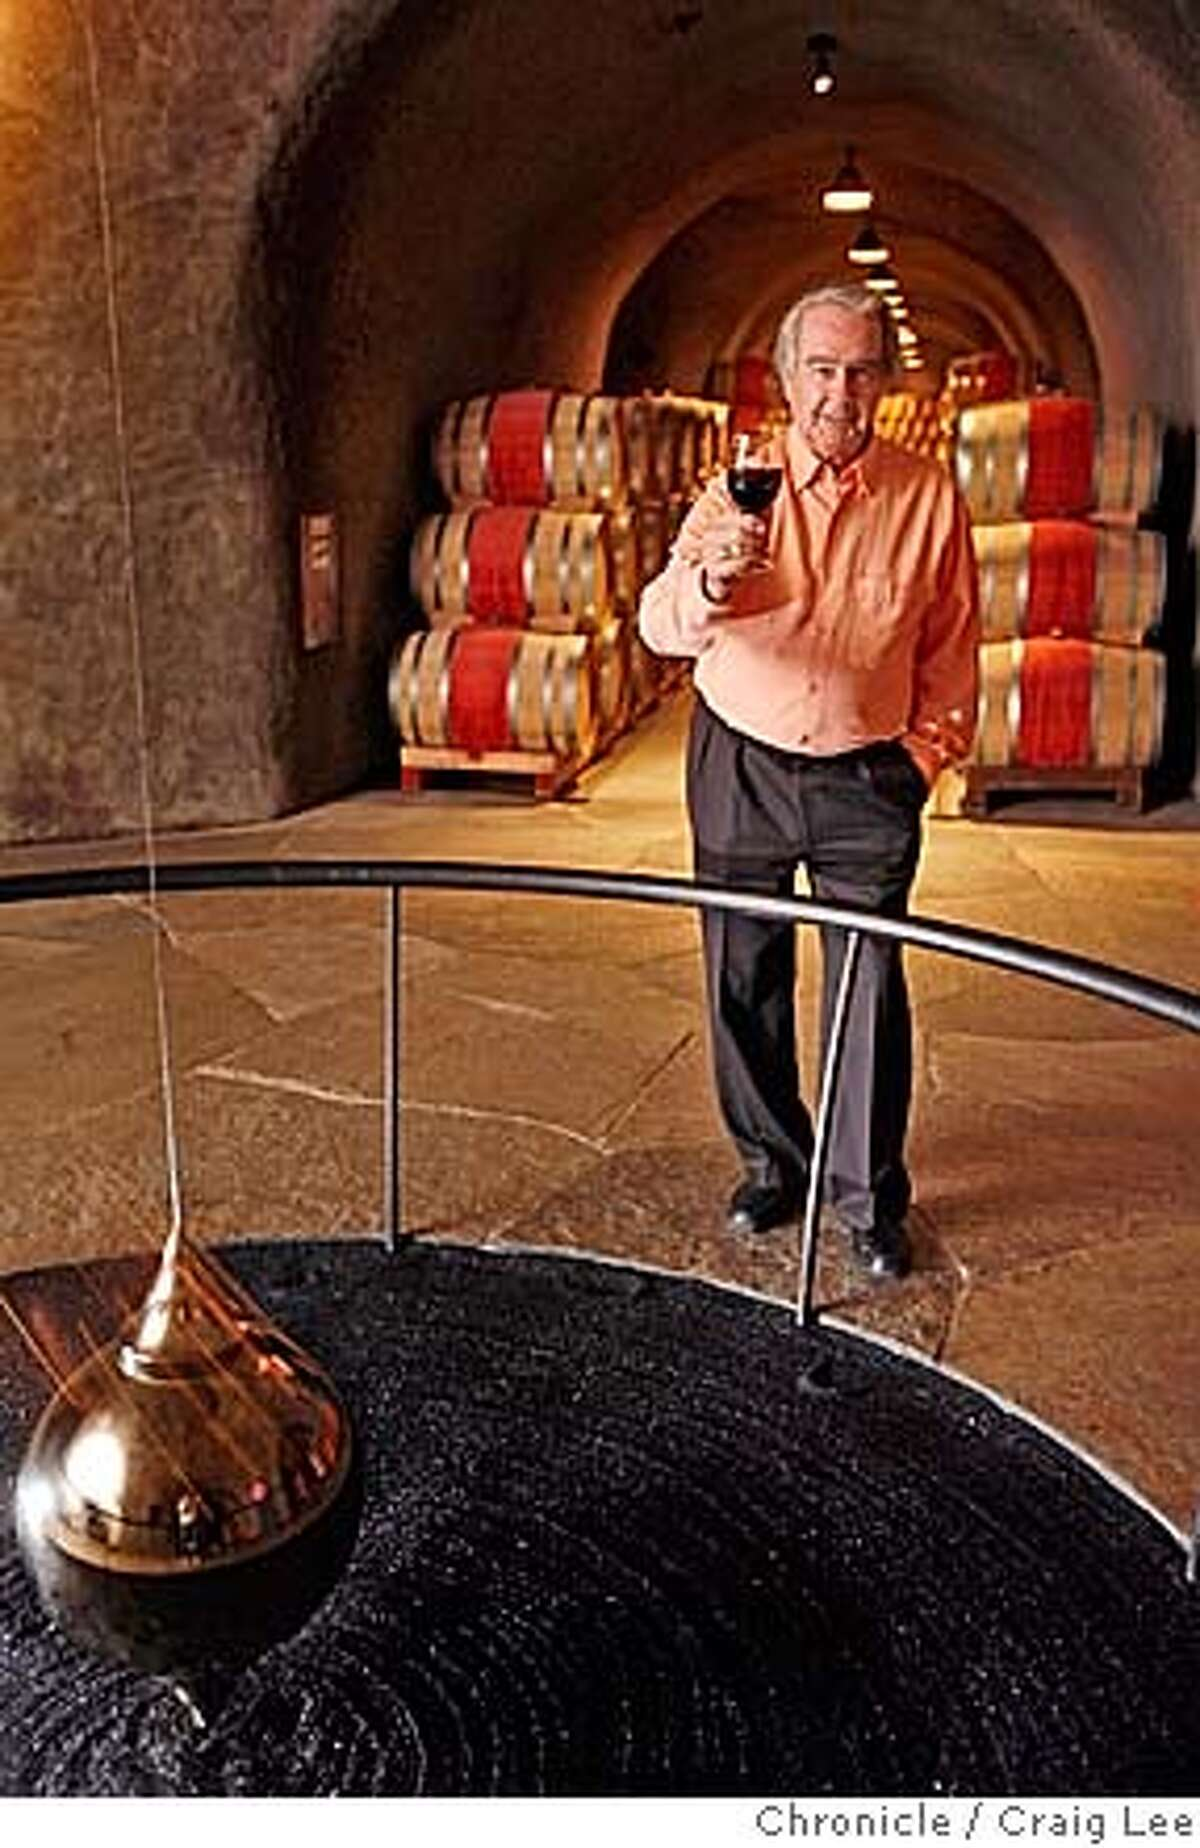 ###Live Caption:Warren Winiarski is the founder of Stag's Leap Wine Cellars in Napa. The winery has just been sold to Marchese Pieiro Antinori and Ste. Michelle Wine Estates, a conglomerate. Photo of Warren Winiarski in the pedulum room in the estate wine caves. The pendulum is a metaphor for the passage of time and the aging of wine. Event on 7/31/07 in Napa.###Caption History:STAGS_165_cl.JPG Warren Winiarski is the founder of Stag's Leap Wine Cellars in Napa. The winery has just been sold to Marchese Pieiro Antinori and Ste. Michelle Wine Estates, a conglomerate. Photo of Warren Winiarski in the pedulum room in the estate wine caves. The pendulum is a metaphor for the passage of time and the aging of wine. Event on 7/31/07 in Napa. photo by Craig Lee / The Chronicle###Notes:###Special Instructions:MANDATORY CREDIT FOR PHOTOG AND SF CHRONICLE/NO SALES-MAGS OUT